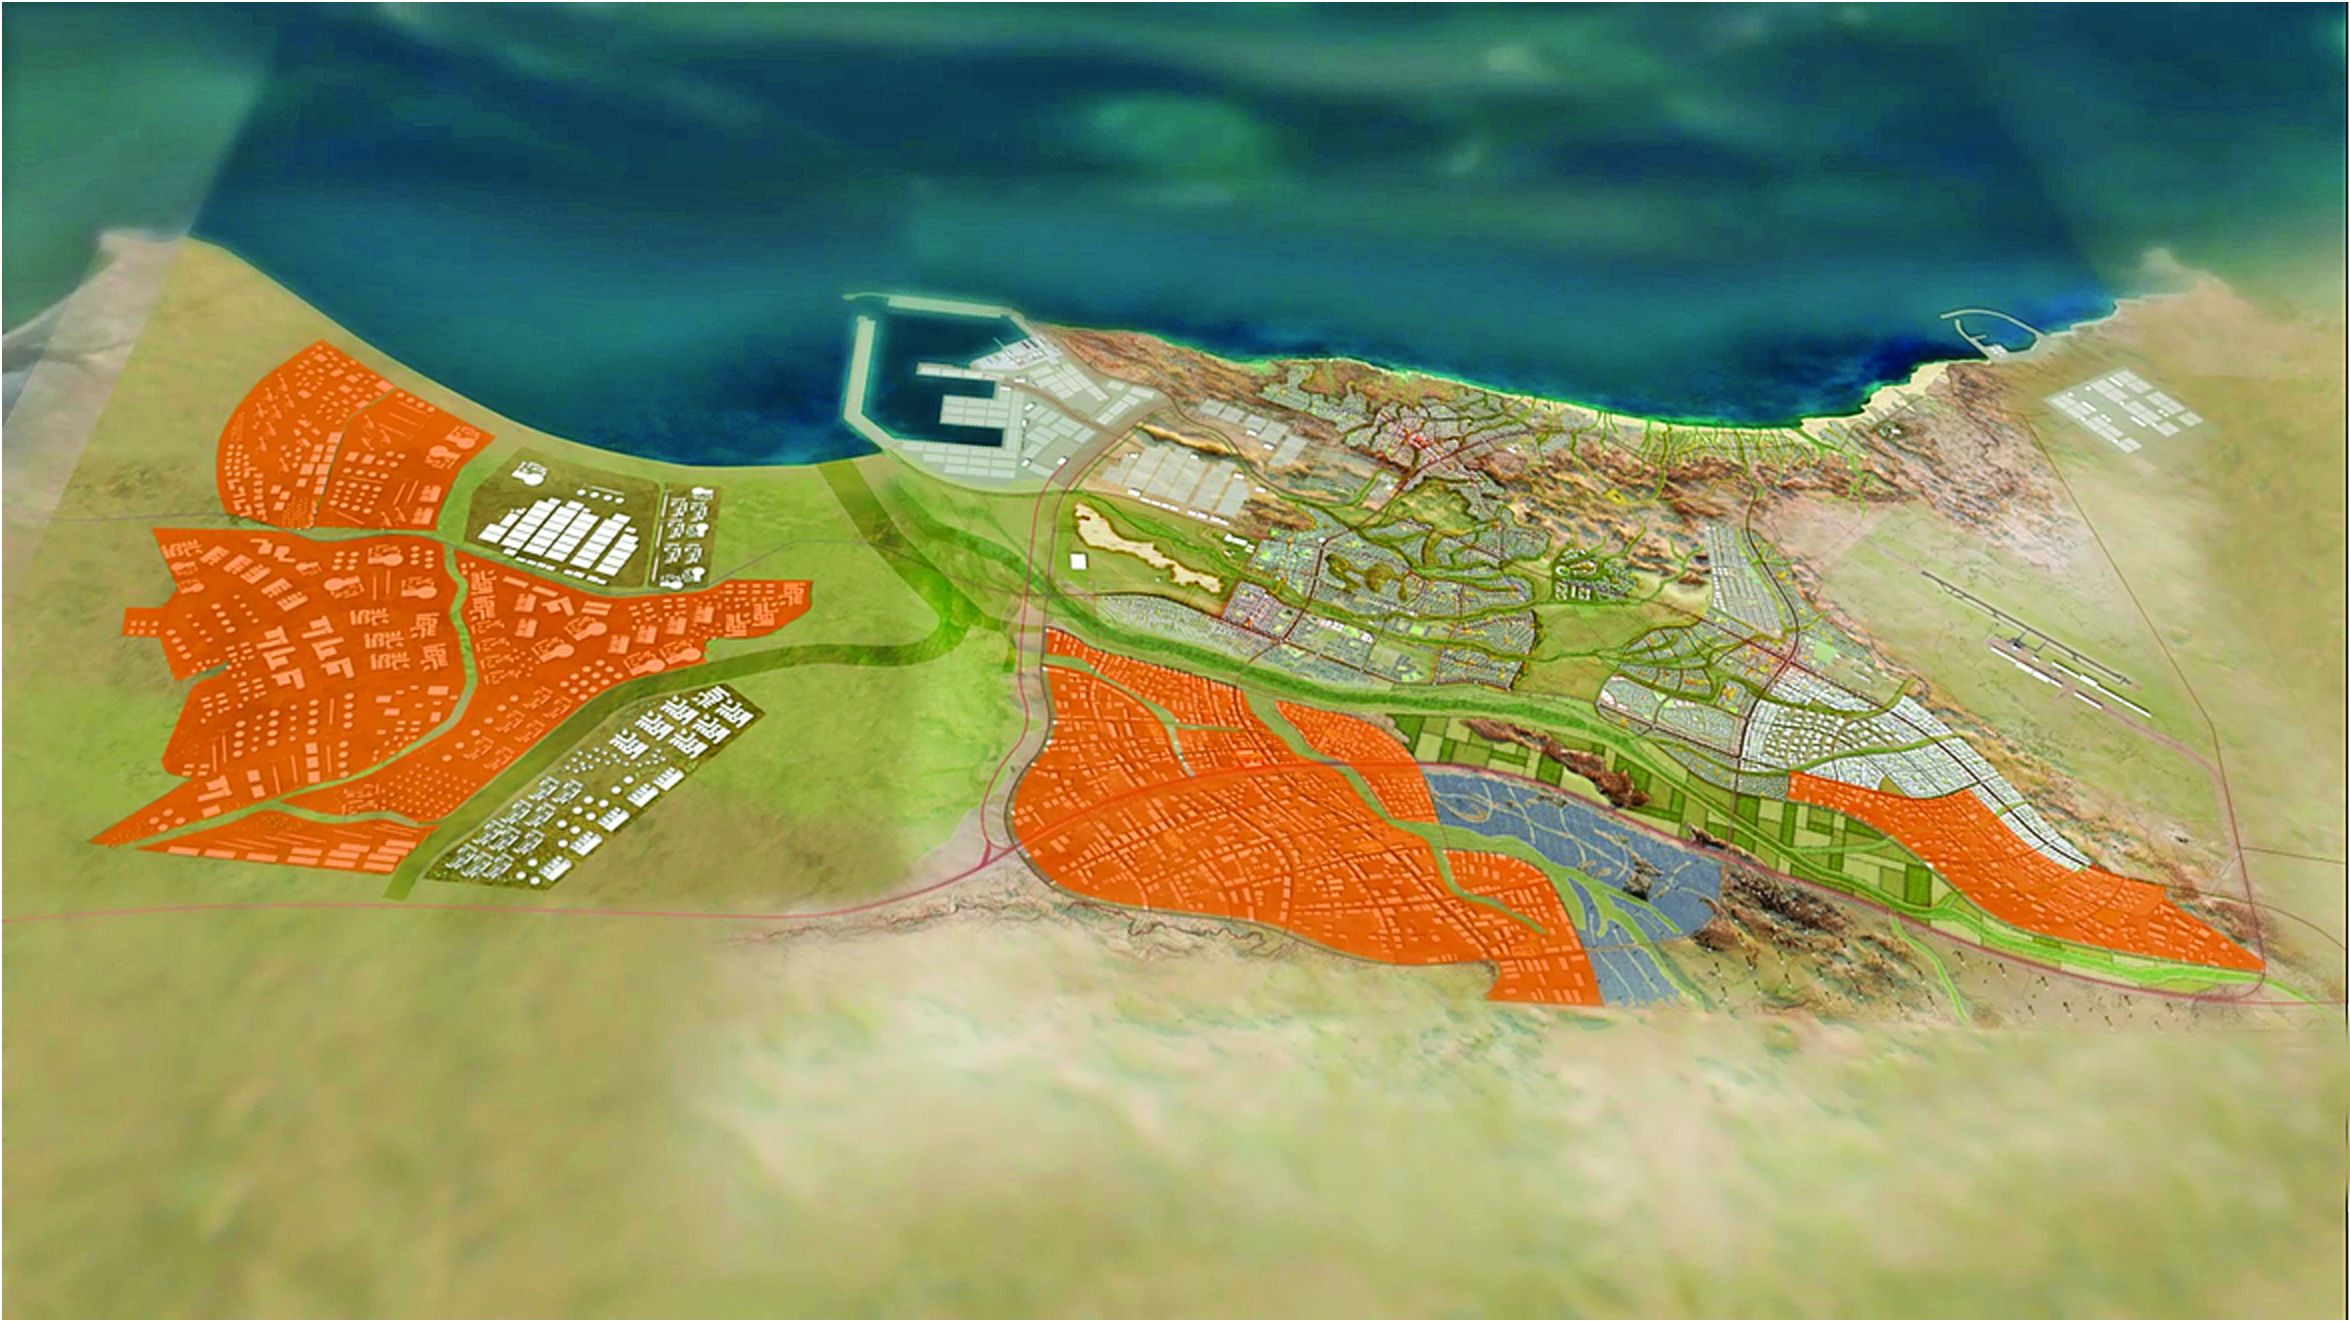 20,000 jobs for Duqm, Oman's supercity of the future